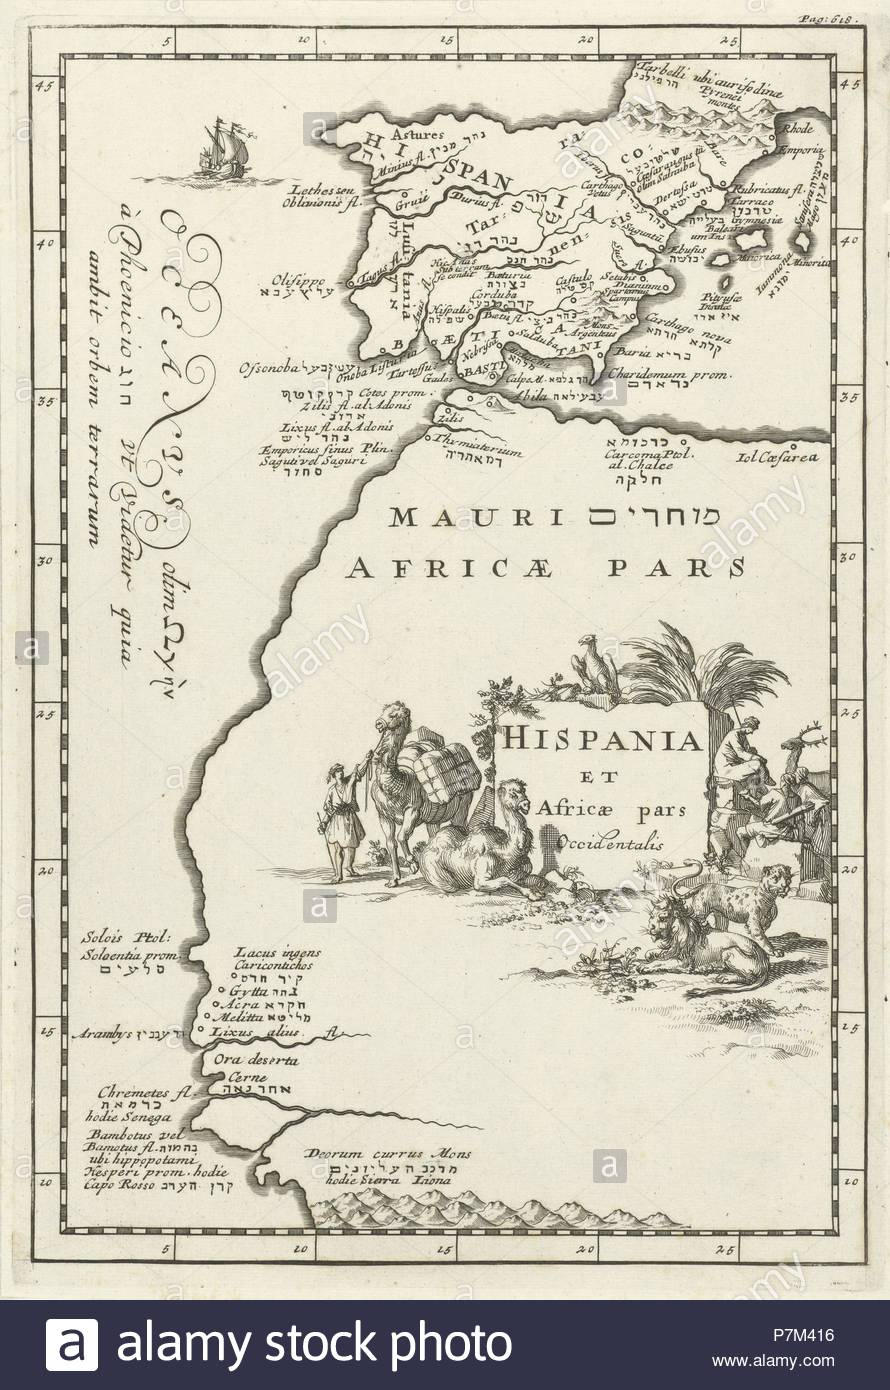 Map Of Spain And North Africa.Map Of Spain And Part Of North Africa Jan Luyken Cornelis